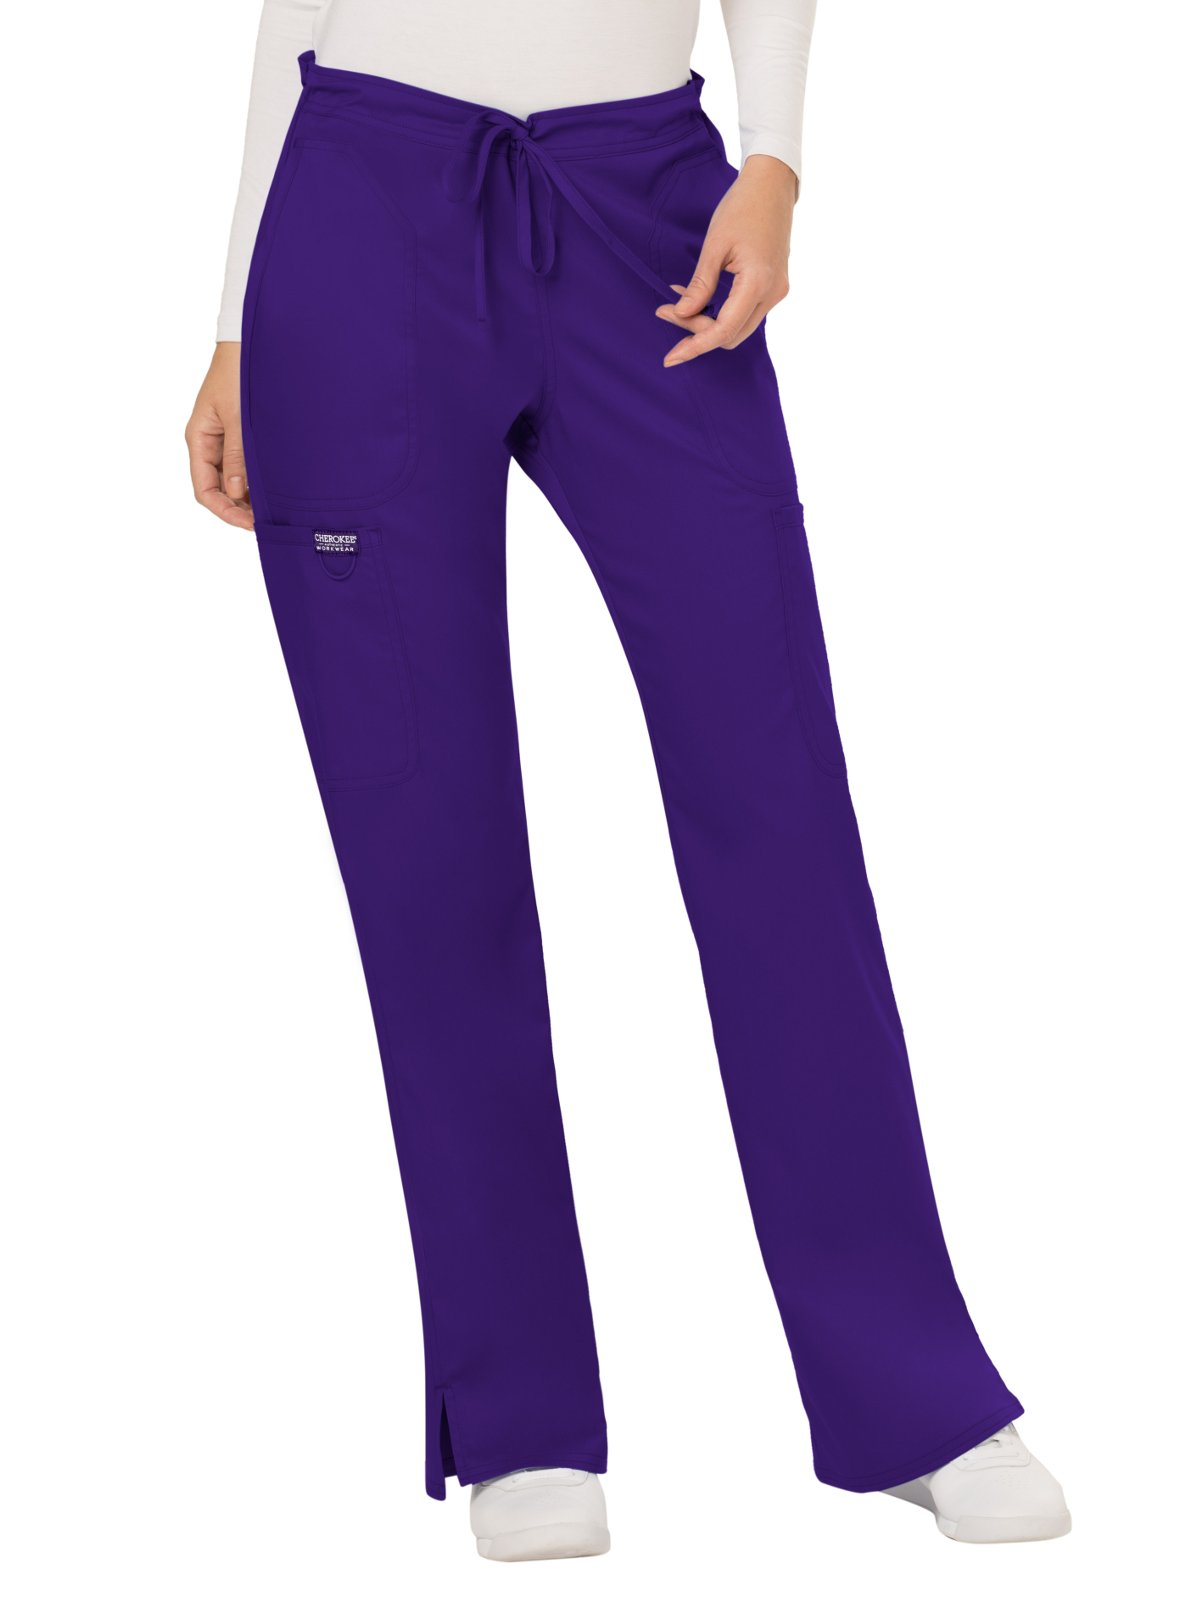 WW Revolution by Cherokee Women's Mid Rise Moderate Flare Drawstring Pant Tall, Grape, XX-Large Tall